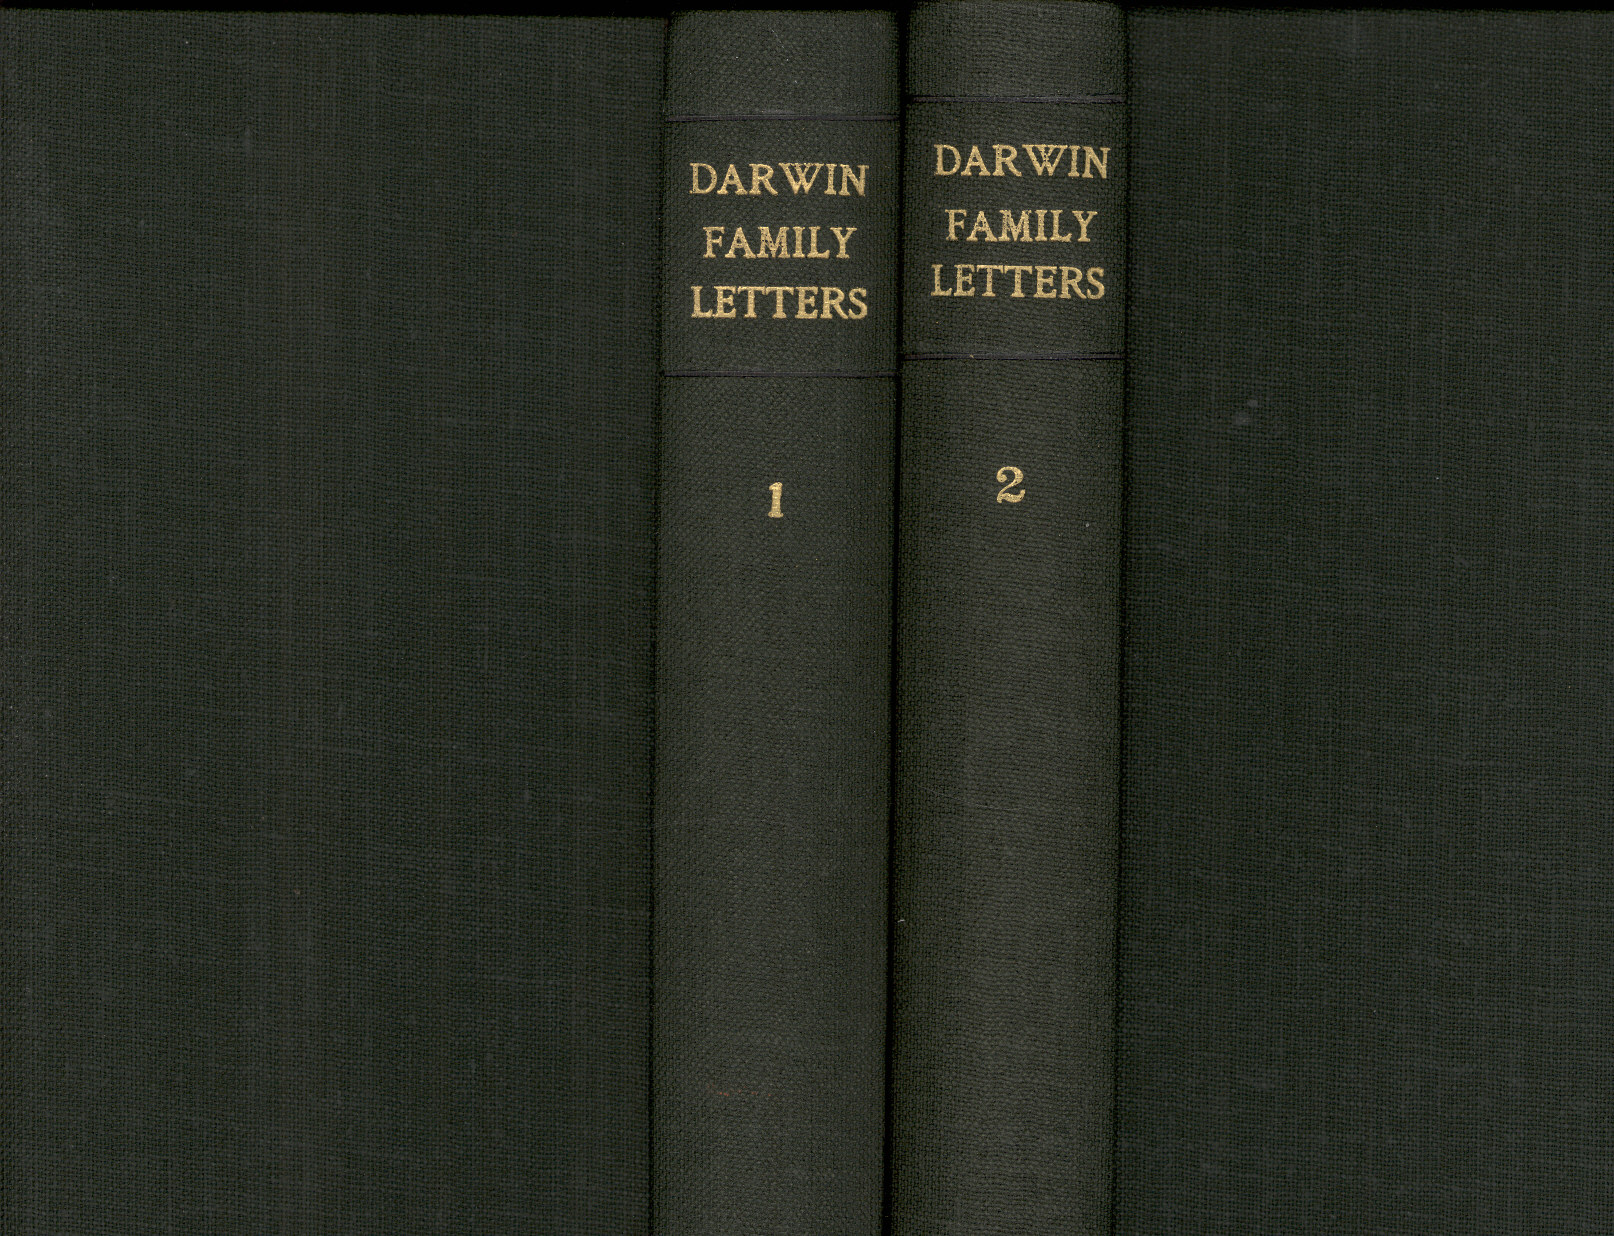 Litchfield H E Ed 1904 Emma Darwin Wife Of Charles A Rider Oblong R 222 B Century Family Letters Cambridge University Press Printed Volume 2